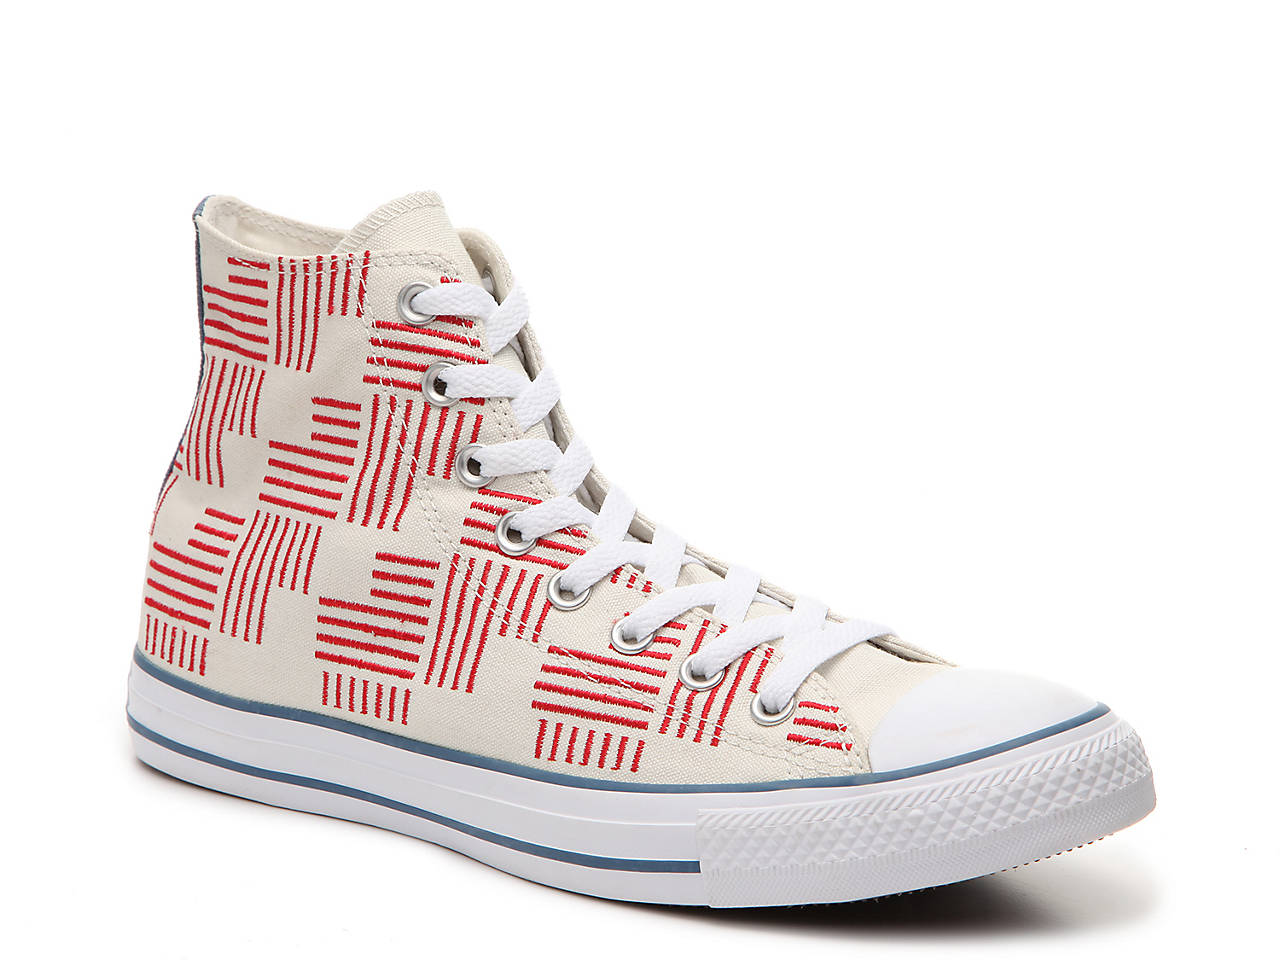 9aafd017f90a56 Converse Chuck Taylor All Star Embroidered High-Top Sneaker ...